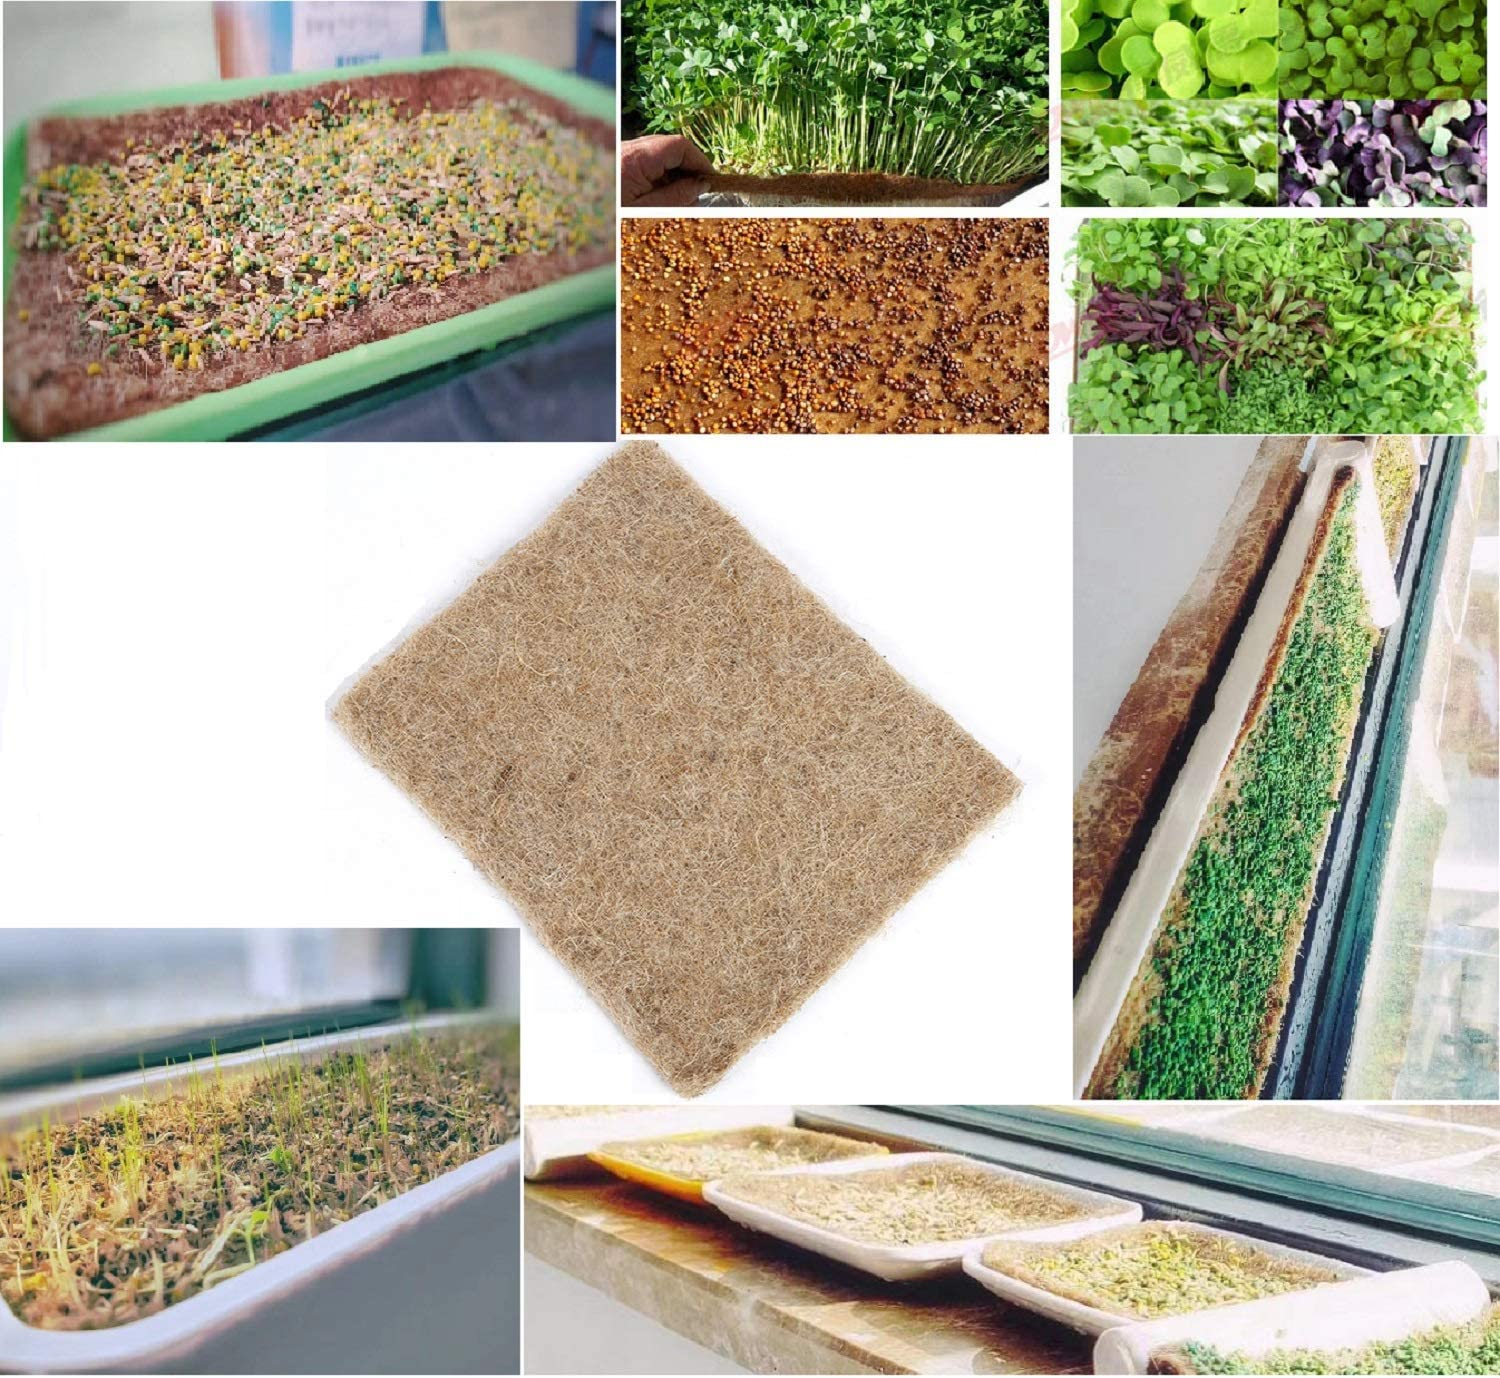 "Hydroponic Grow Pads - Hemp Grow Mat - Perfect for Microgreens, Wheatgrass, Sprouts - (Fits Standard 10"" X 20"" Germination Tray) - Environmentally Friendly, Fully Biodegradable (12)"